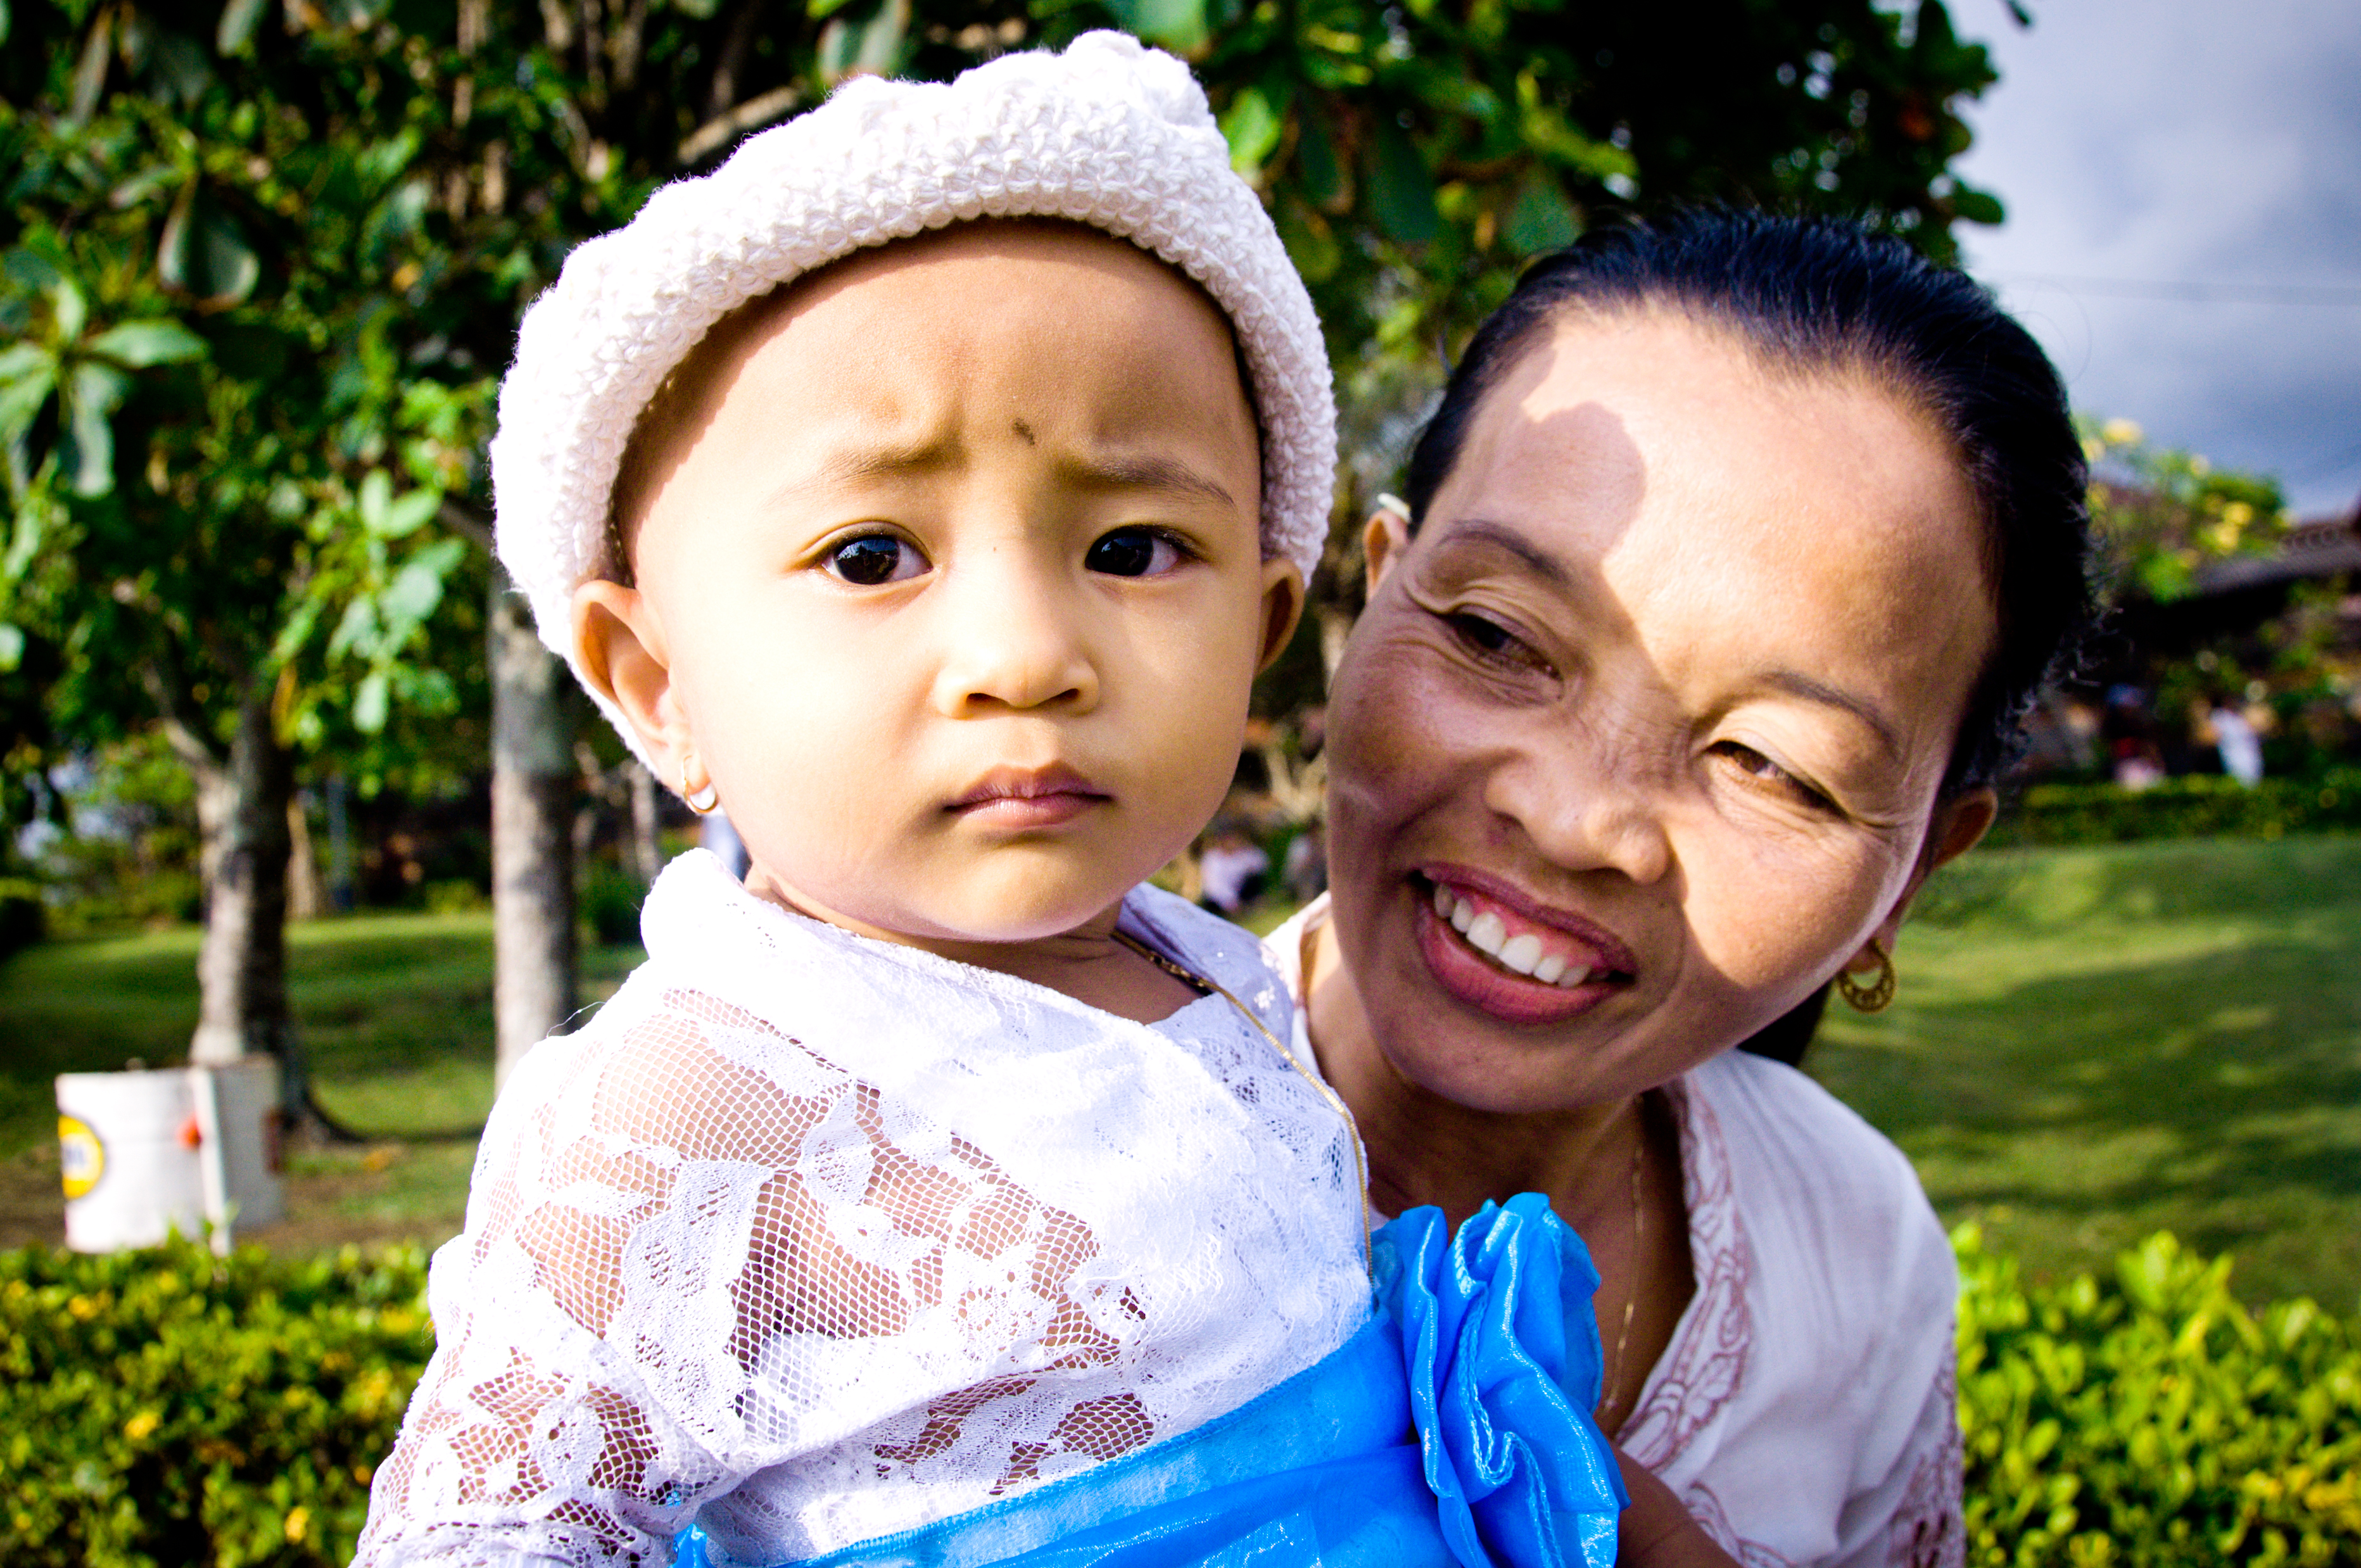 Little baby with grandmother, Adorable, Hug, Infant, Innocent, HQ Photo